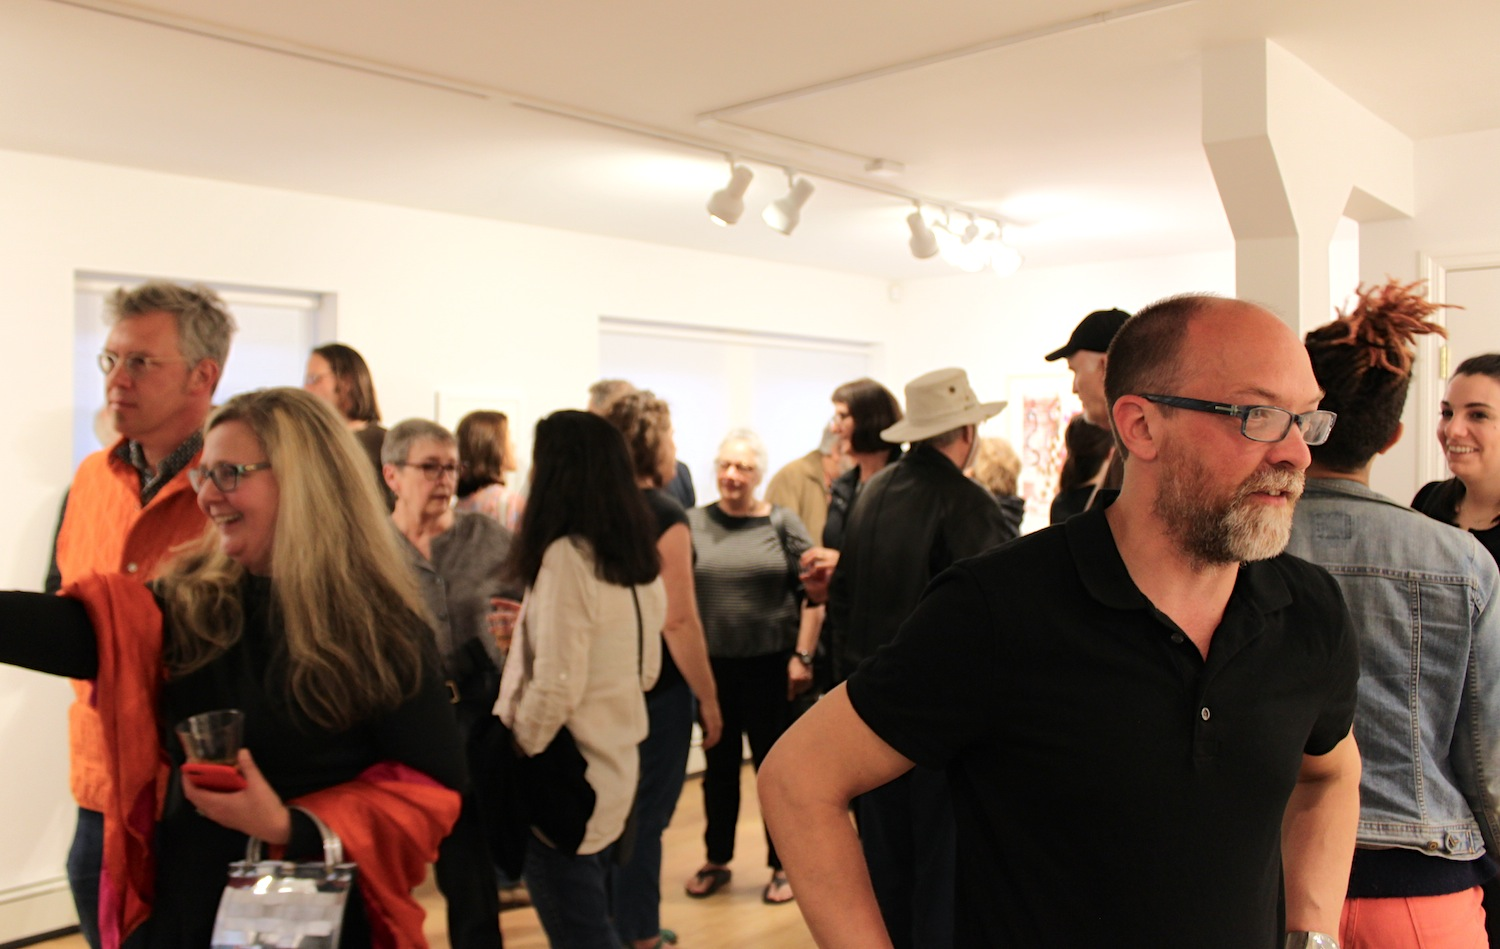 Gabe Brown Opening at Matteawan Gallery during Beacon Arts' Monthly Second Saturday Event | Image Courtesy of Matteawan Gallery